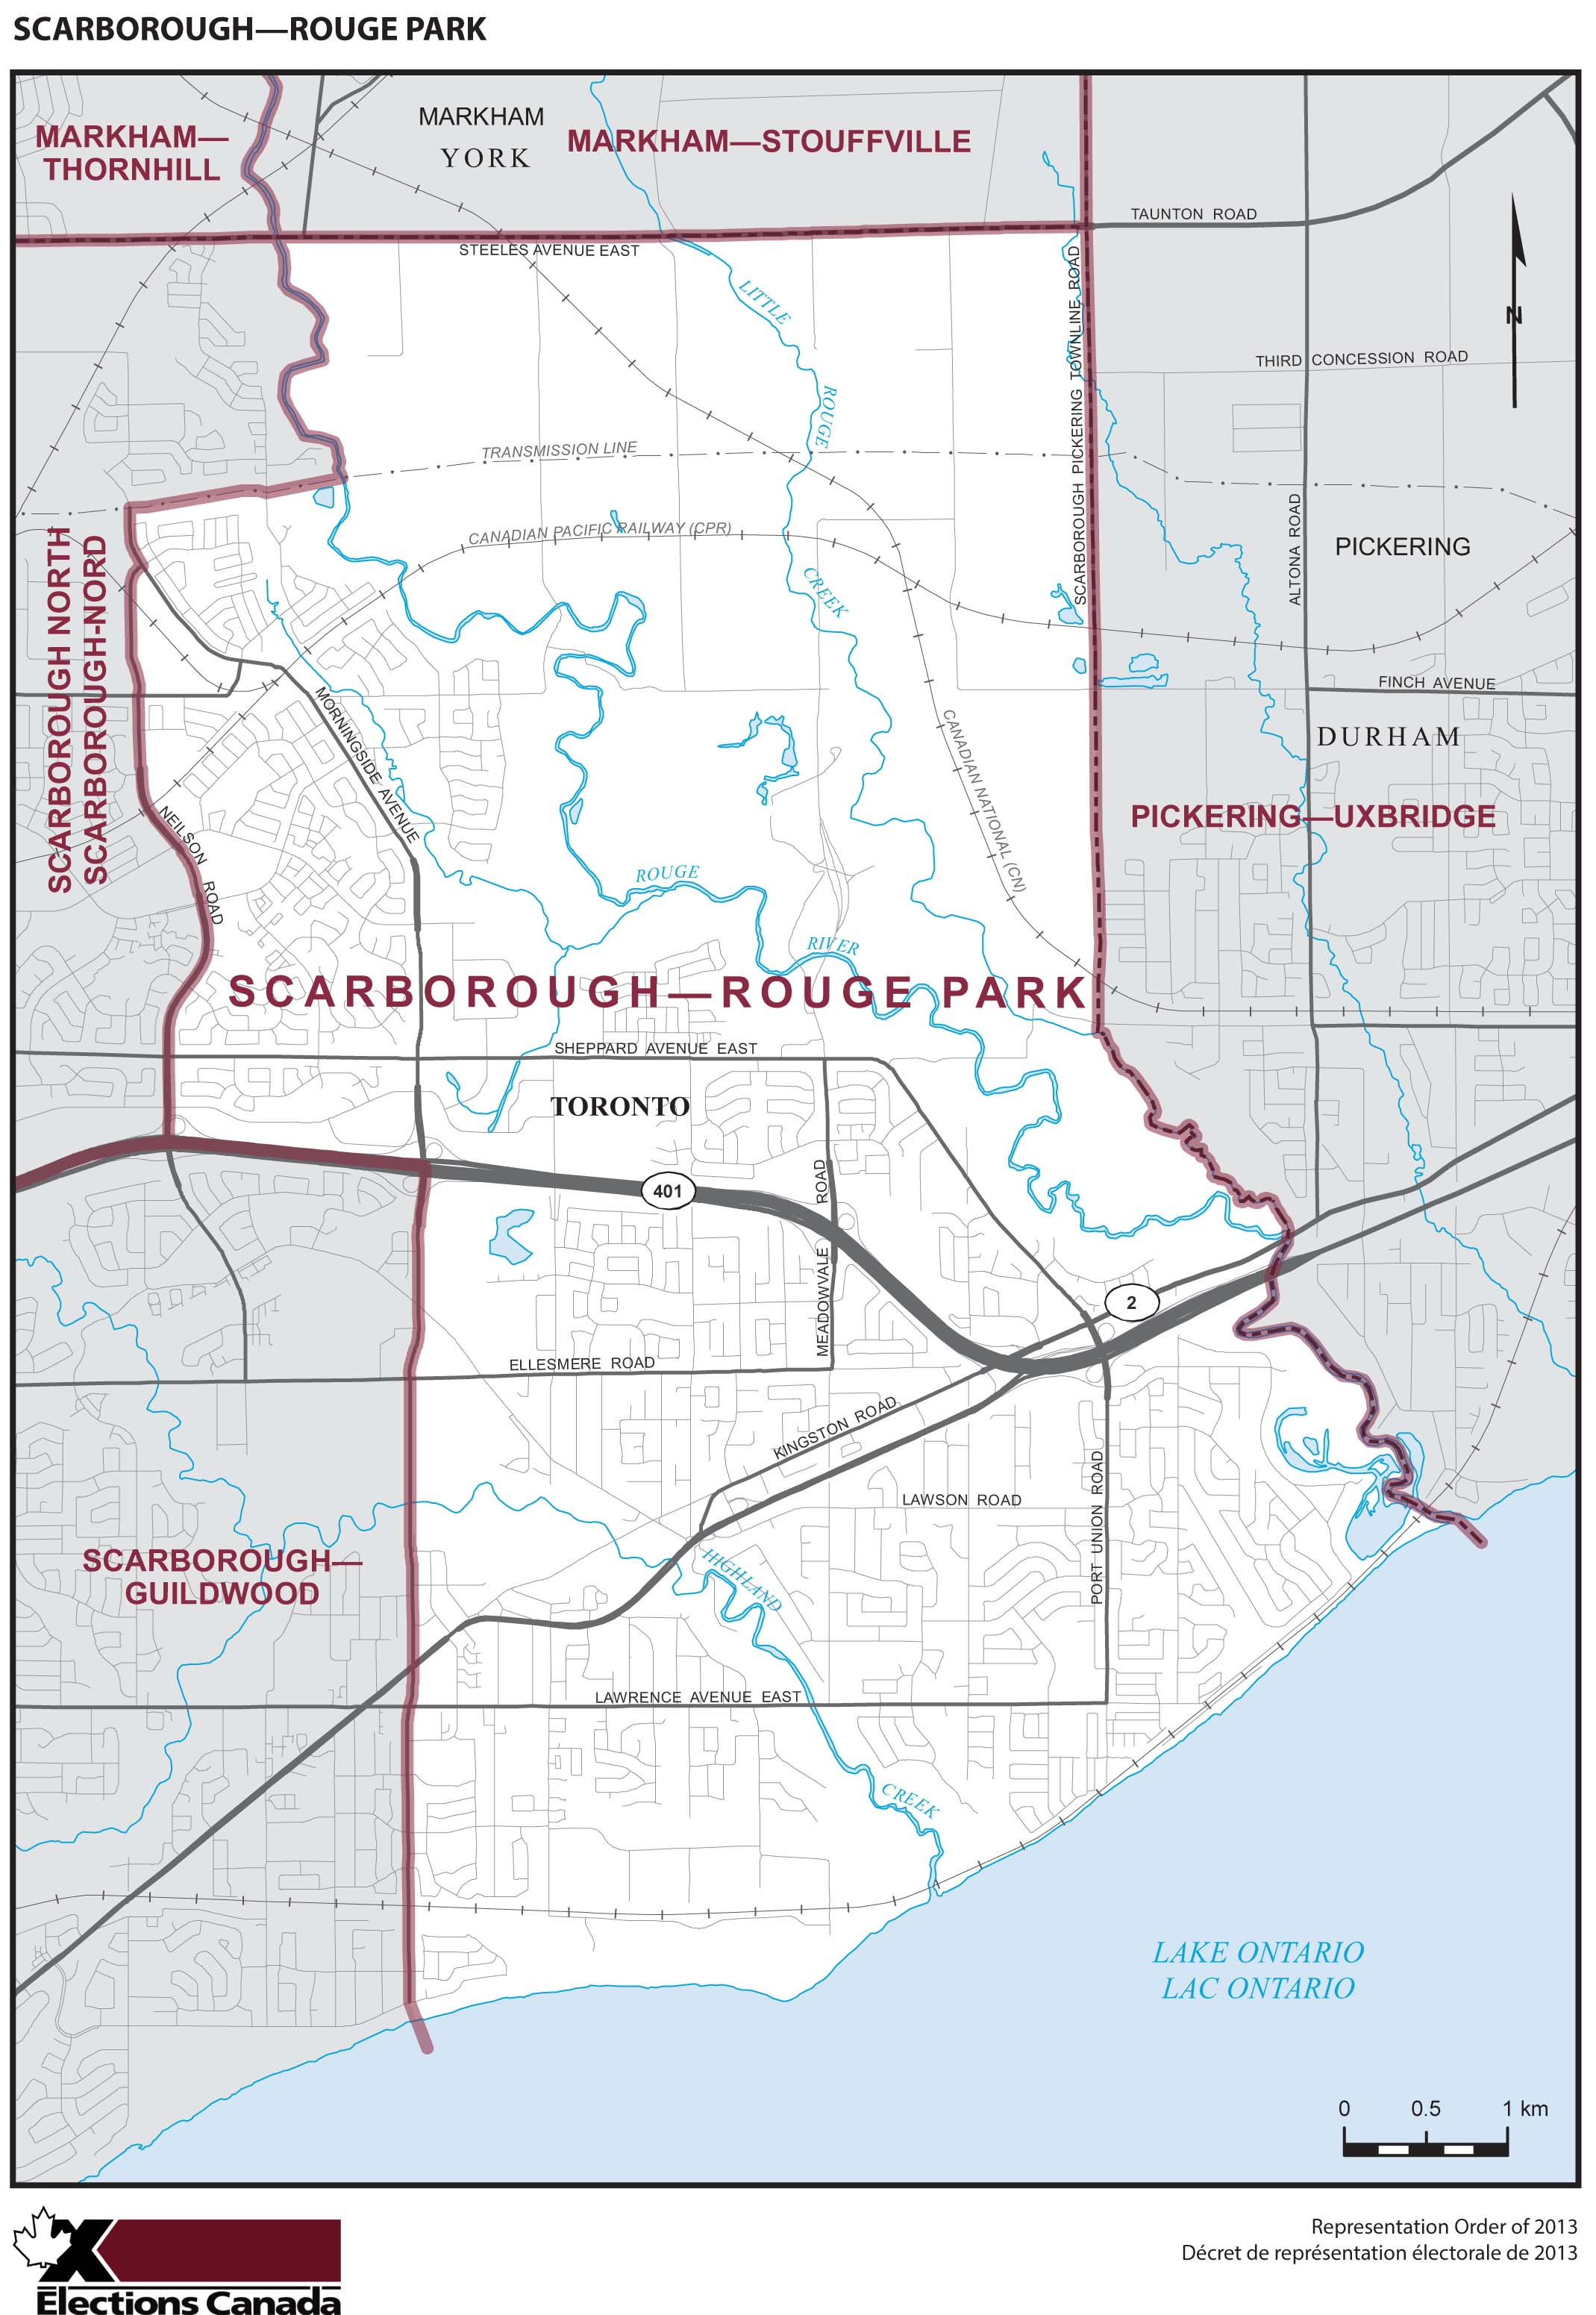 Map: Scarborough--Rouge Park, Federal electoral district, 2013 Representation Order (in white), Ontario